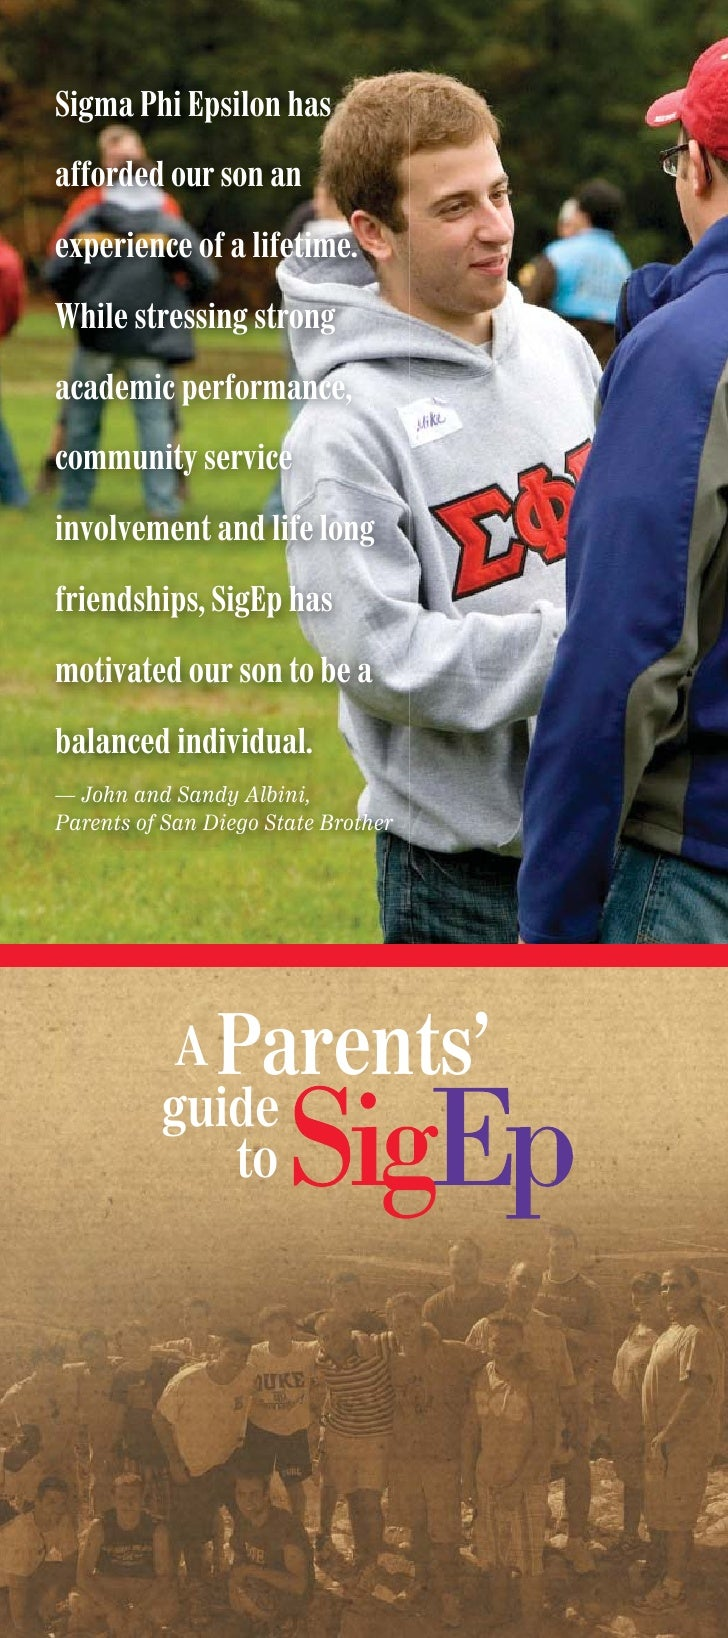 Sigma Phi Epsilon has  afforded our son an  experience of a lifetime.  While stressing strong  academic performance,  comm...